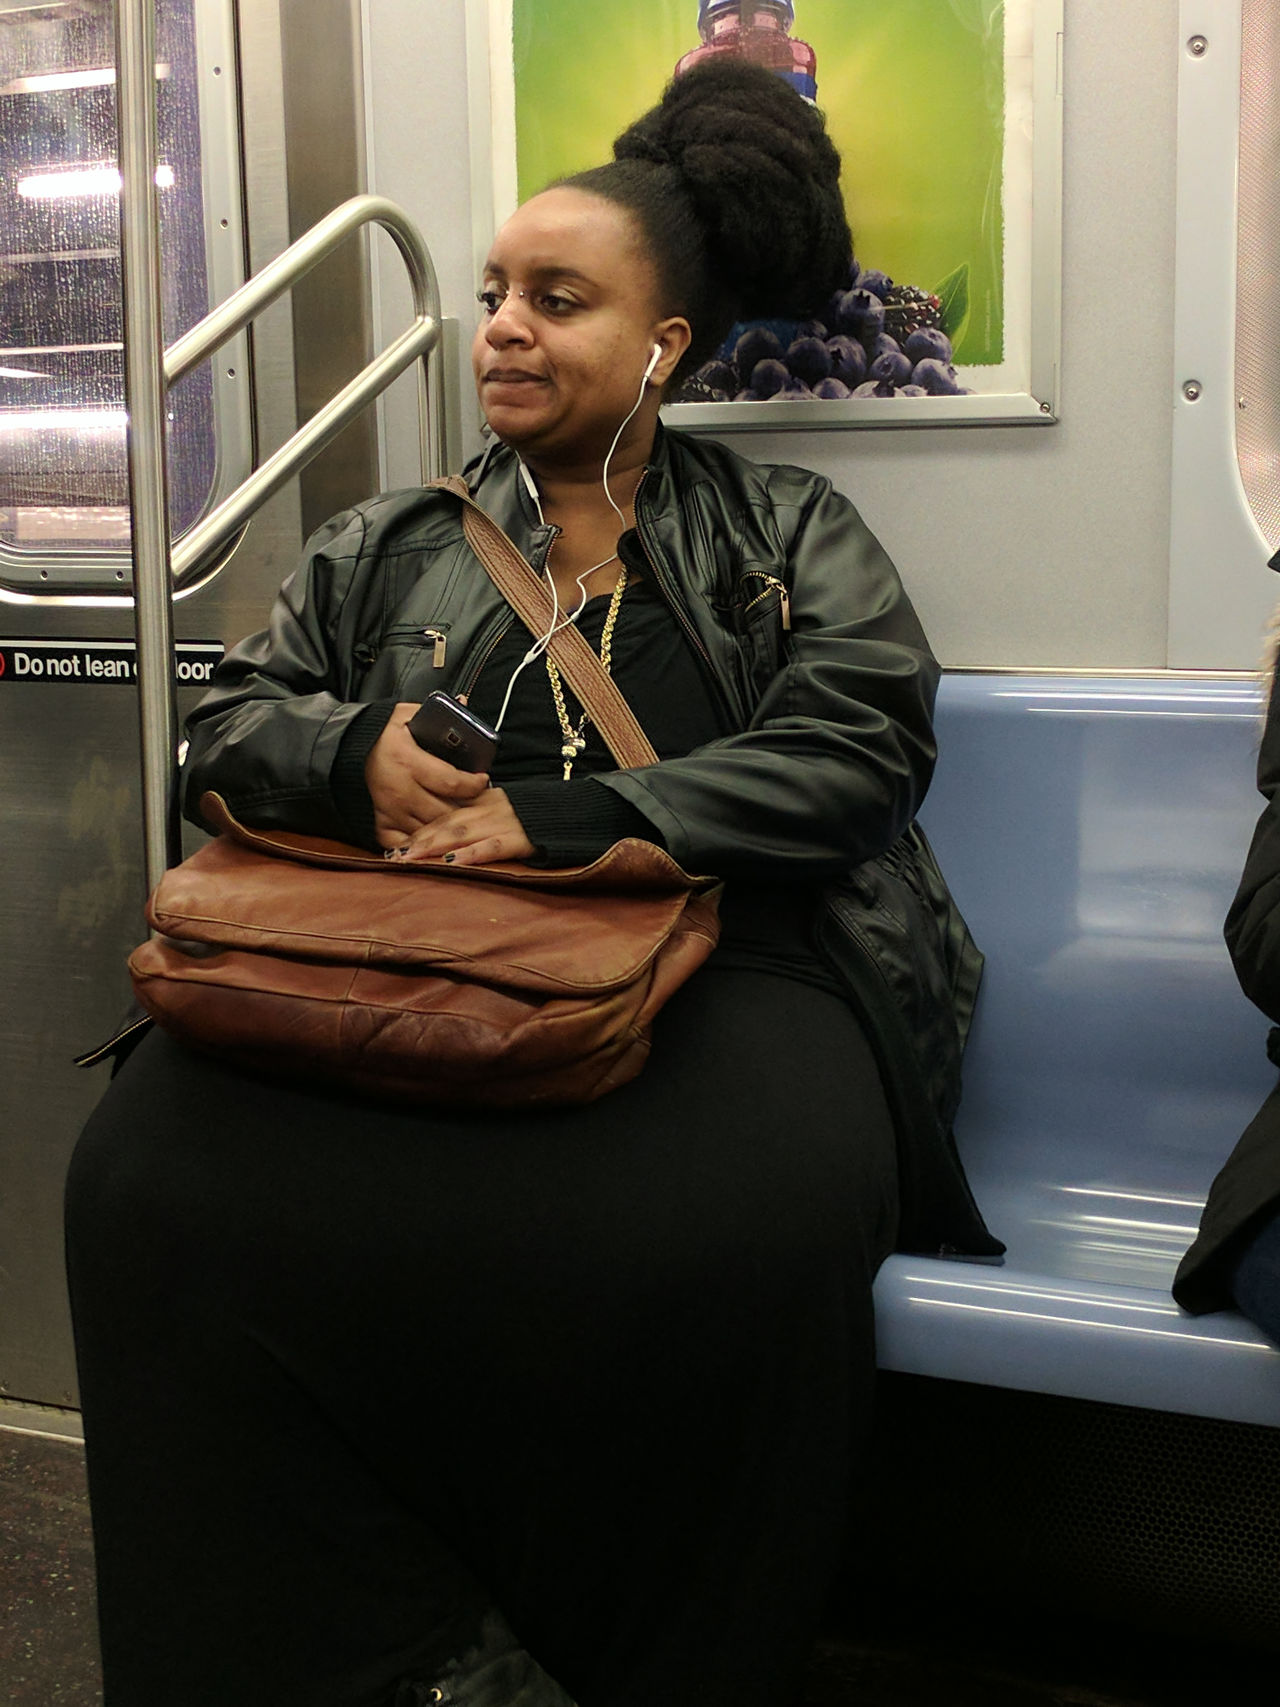 Beautiful Woman City Life City Portraits Commuting F Train New York City On The Train One Person One Woman Only Portrait Public Transportation Single Person Sitting Subway Subway Train Transit